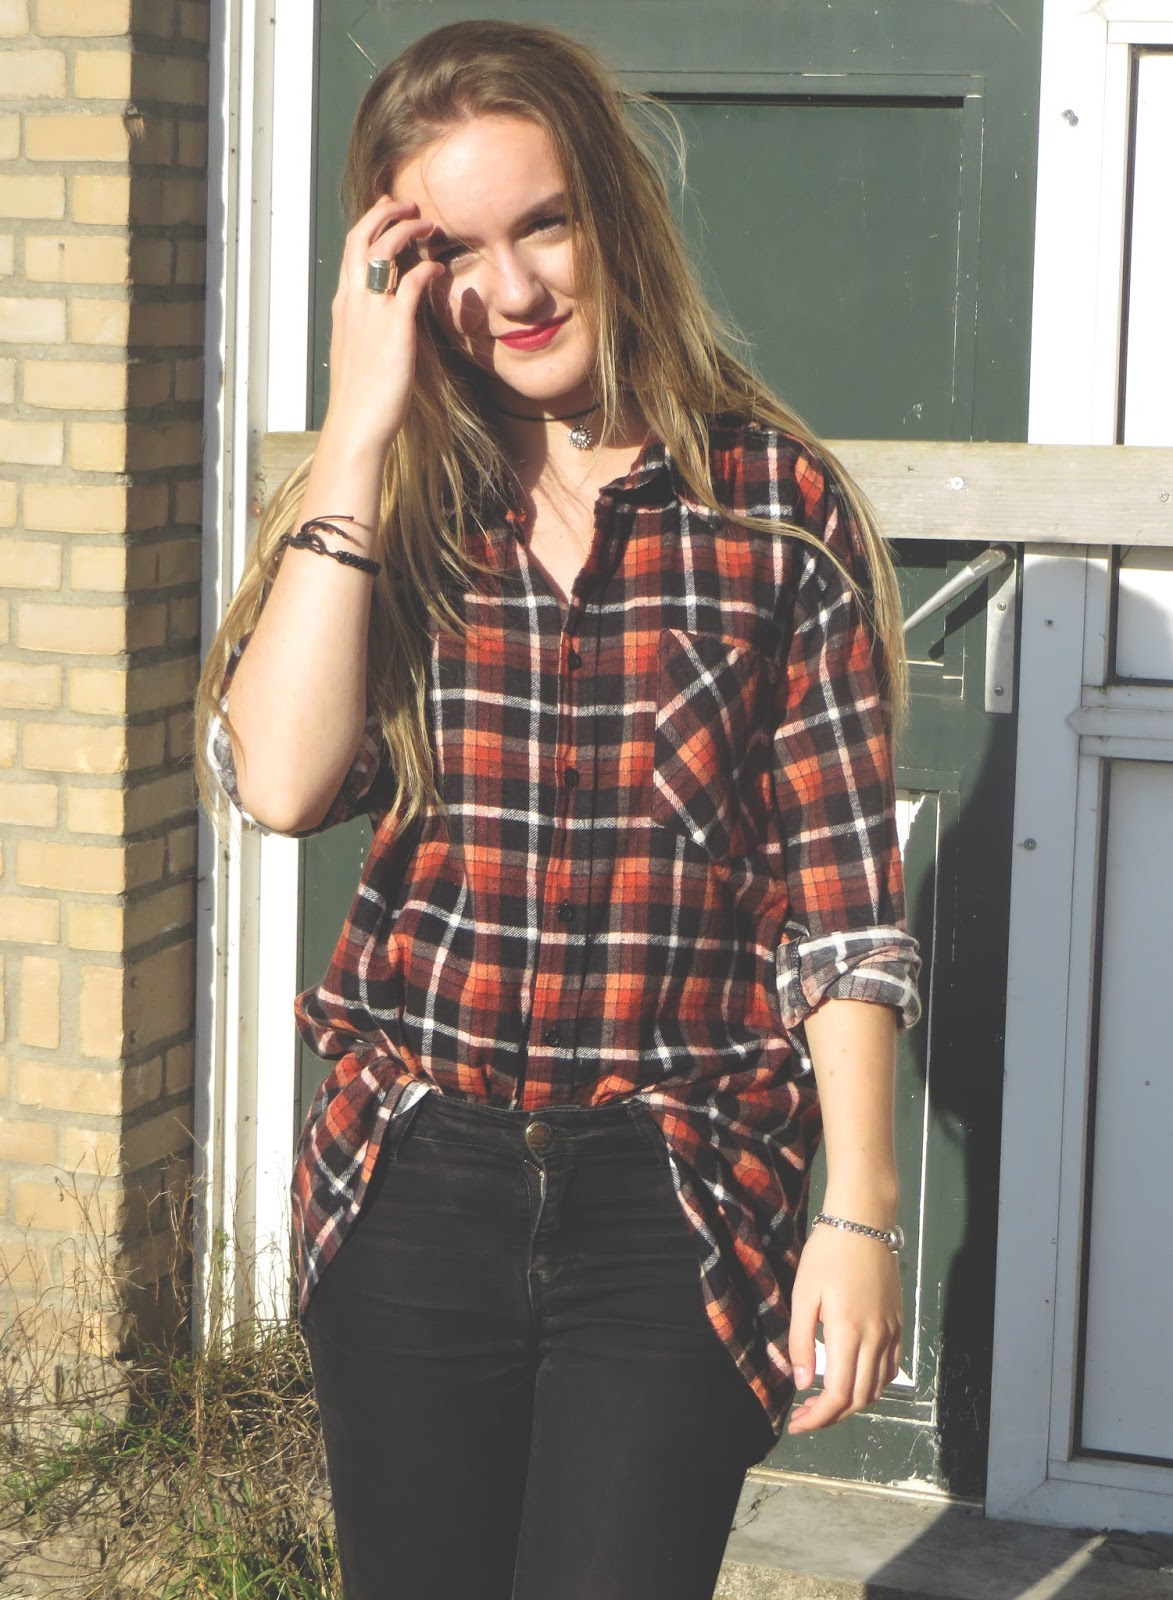 outfit with plaid or tartan shirt and black jeans